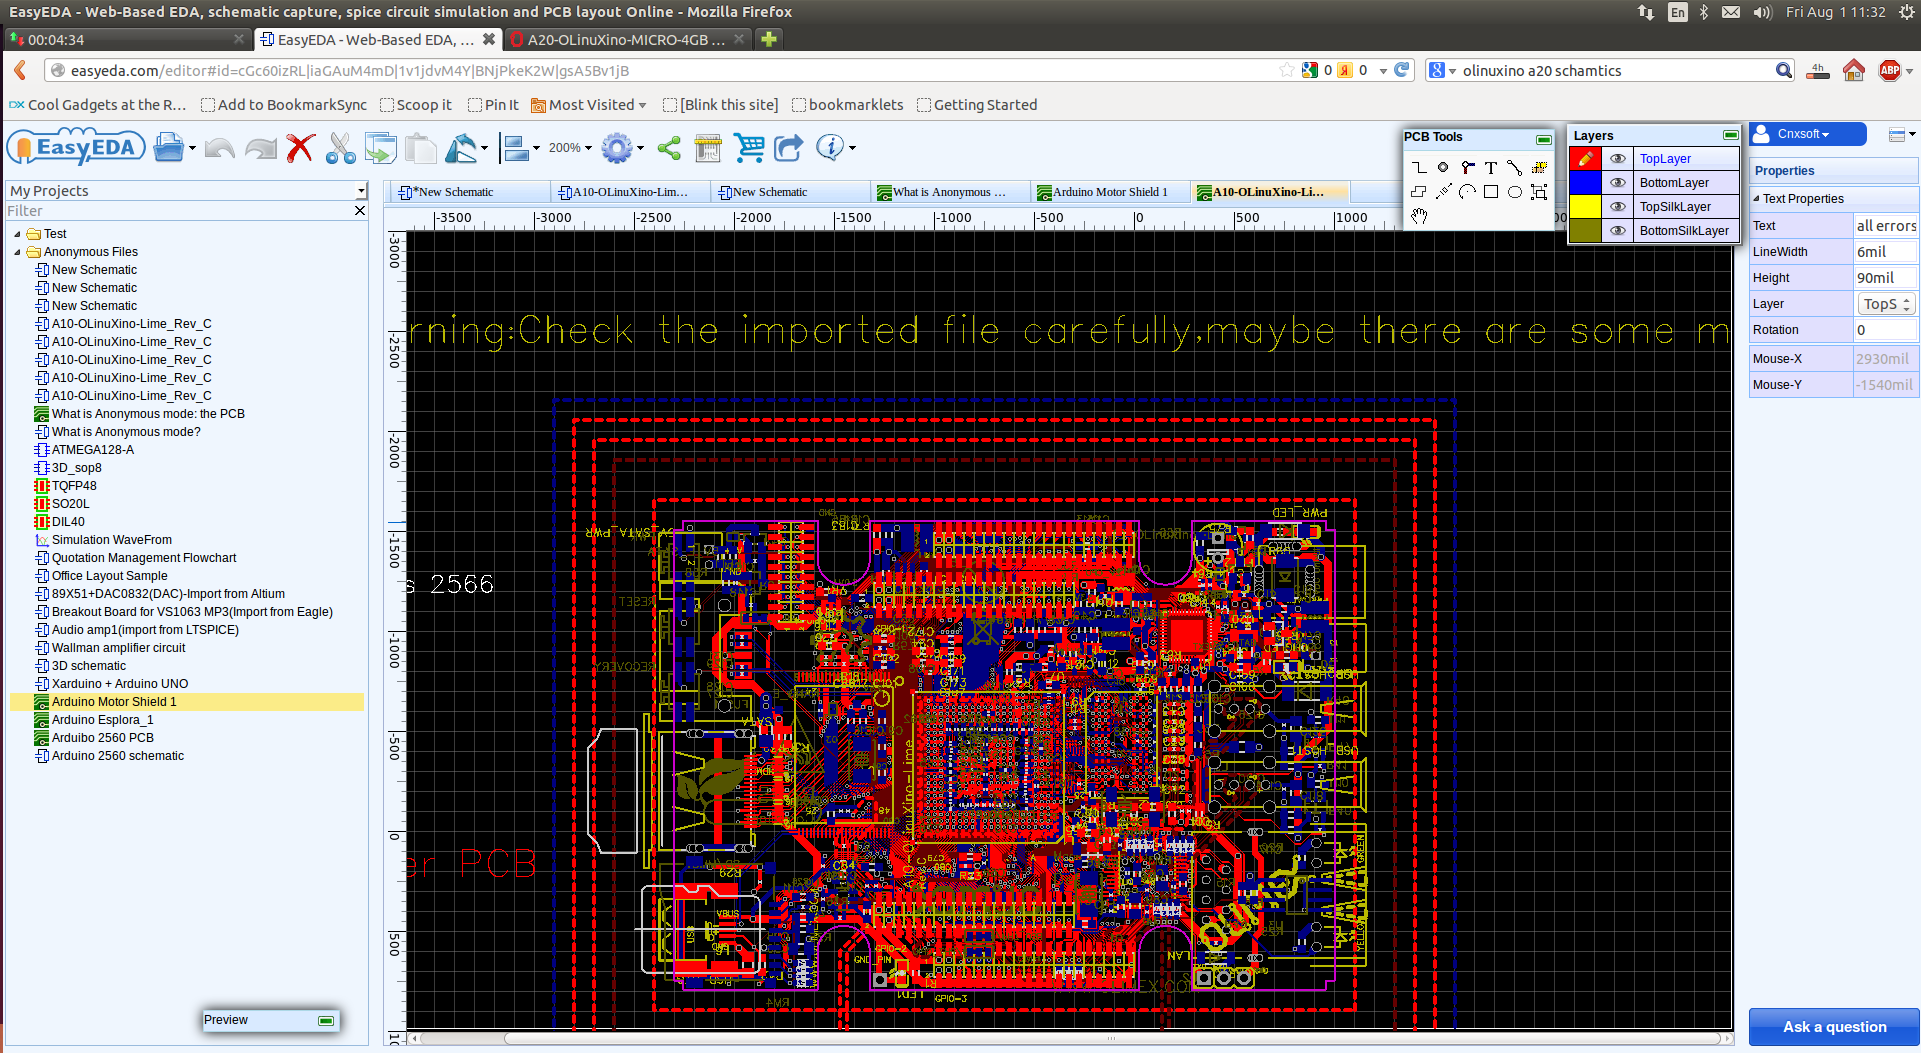 EasyEDA is a Web-based Schematics Capture, Simulation, and PCB ...